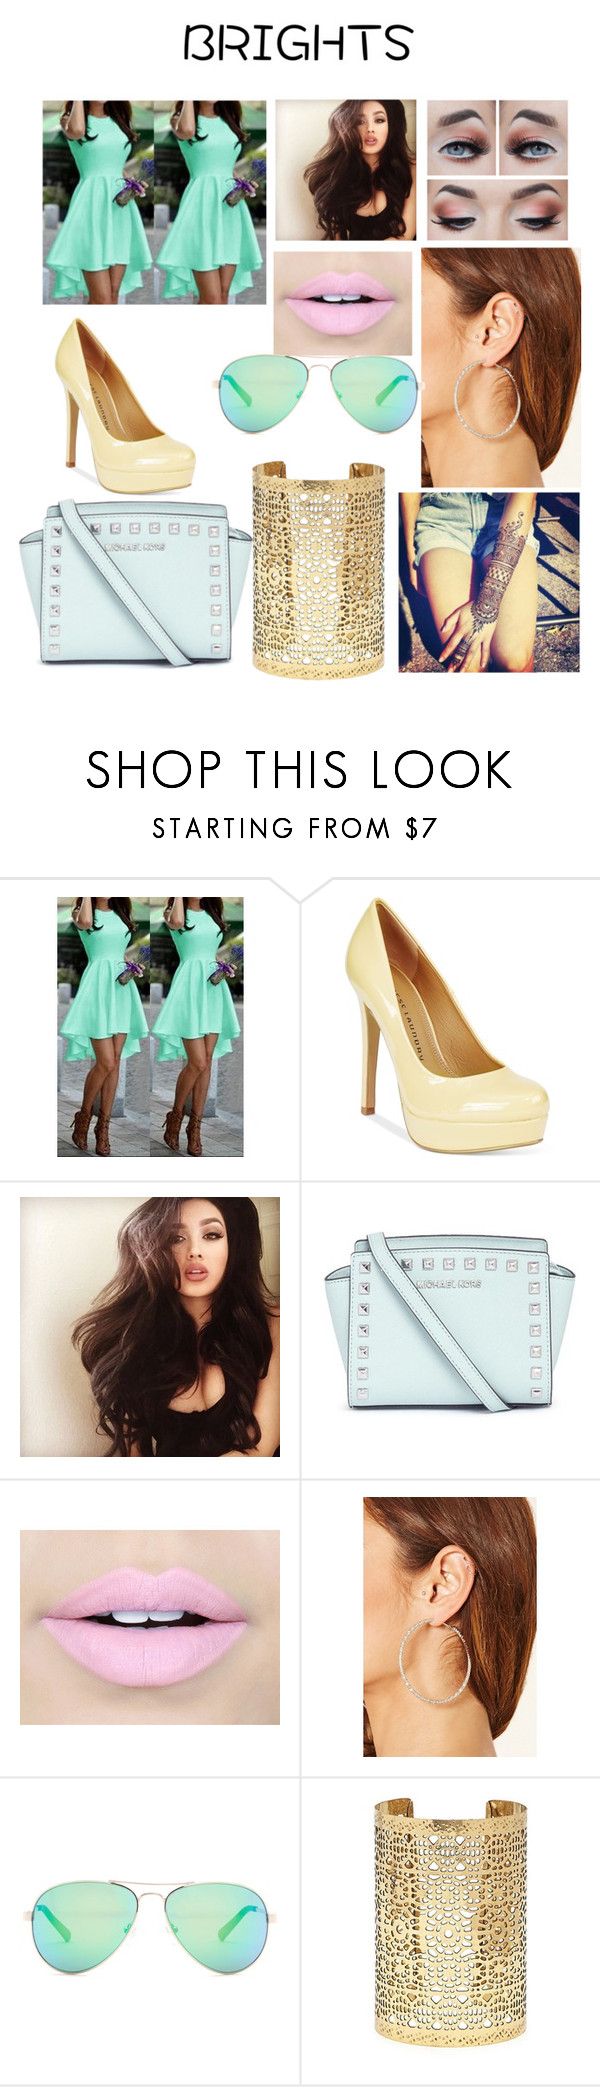 """""""Untitled #140"""" by moyersk on Polyvore featuring Chinese Laundry, Michael Kors, Fiebiger, Forever 21, GUESS and summerbrights"""